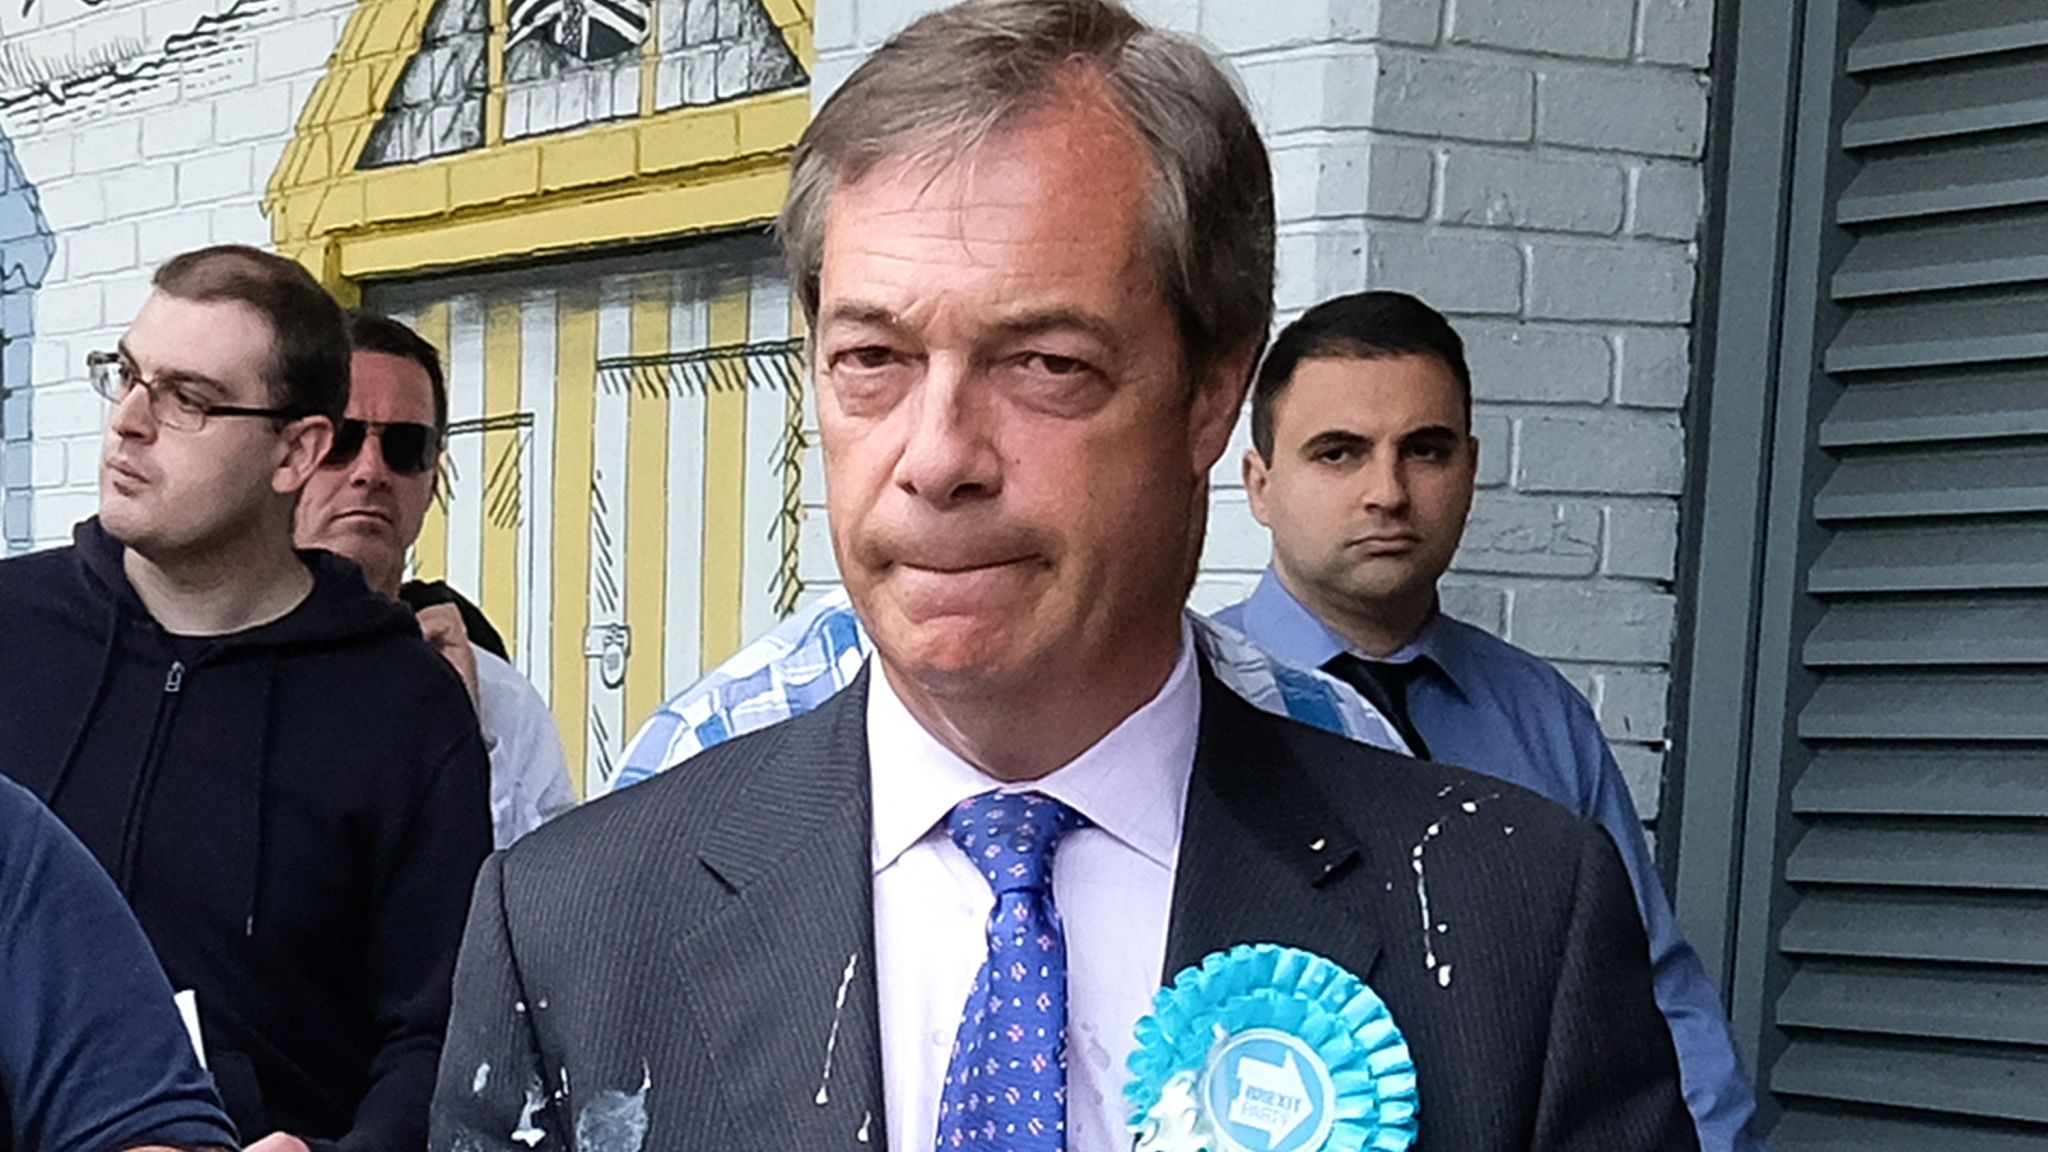 Nigel Farage is escorted to a car after having milkshake thrown over him